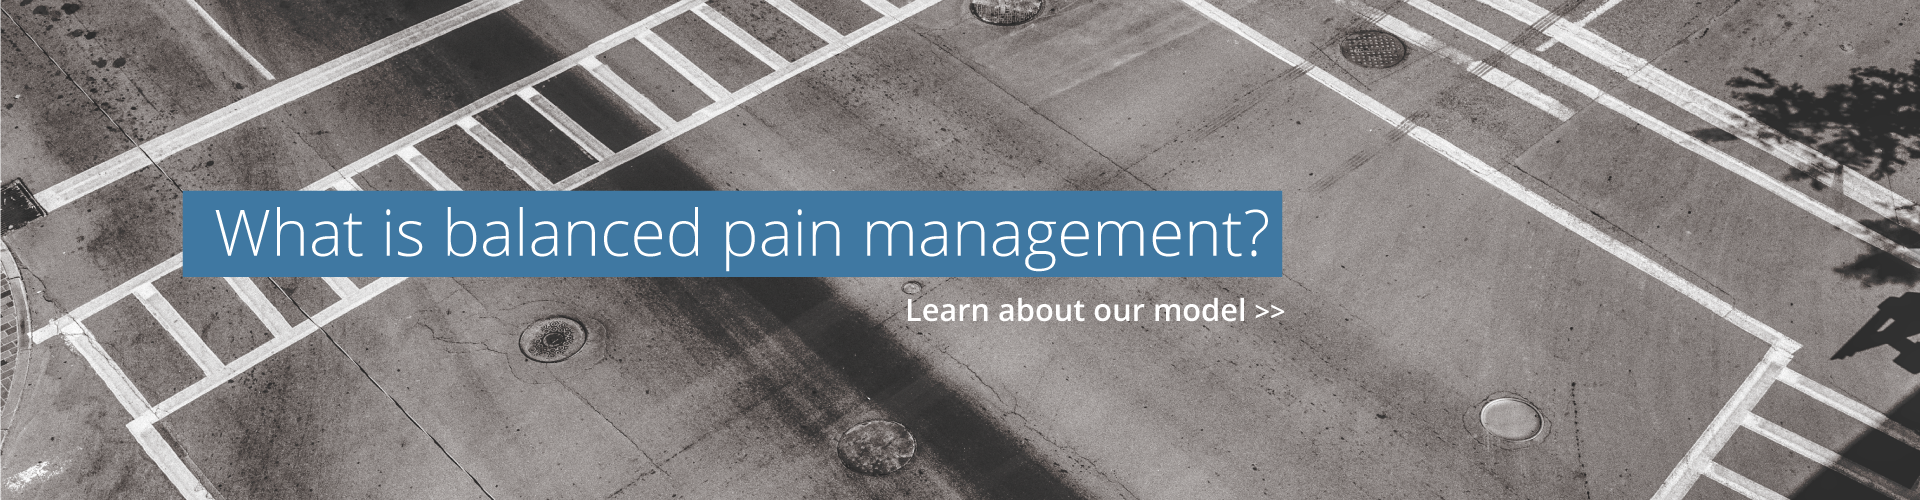 What is balanced pain management?